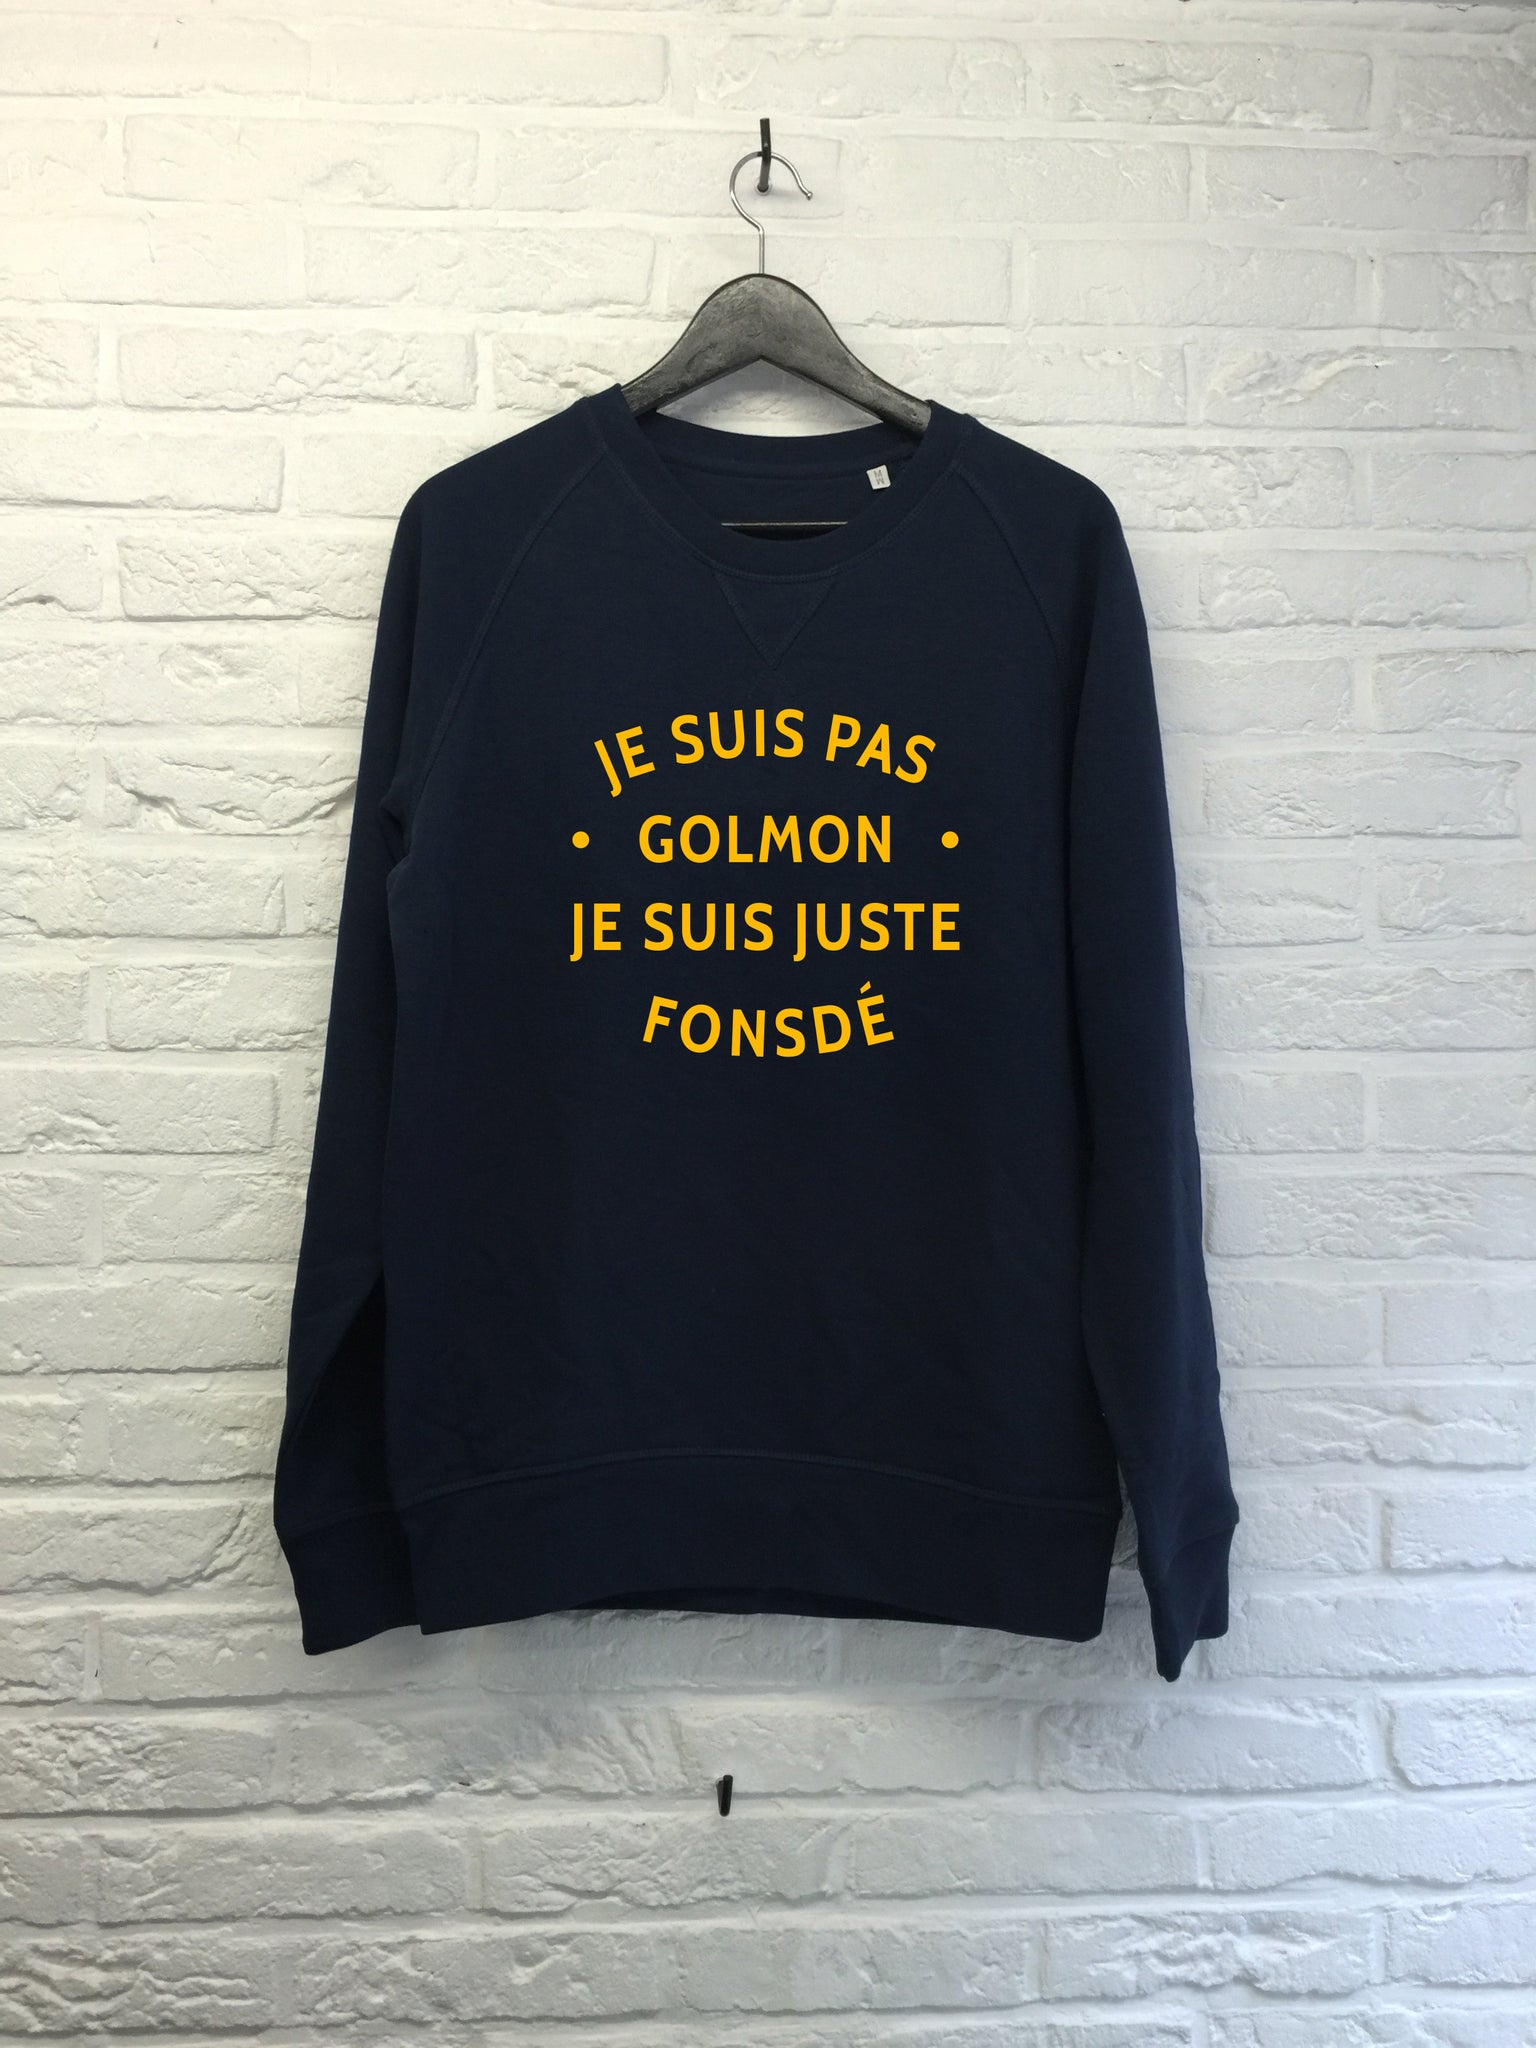 Je suis pas golmon - Sweat Deluxe - Navy-Sweat shirts-Atelier Amelot